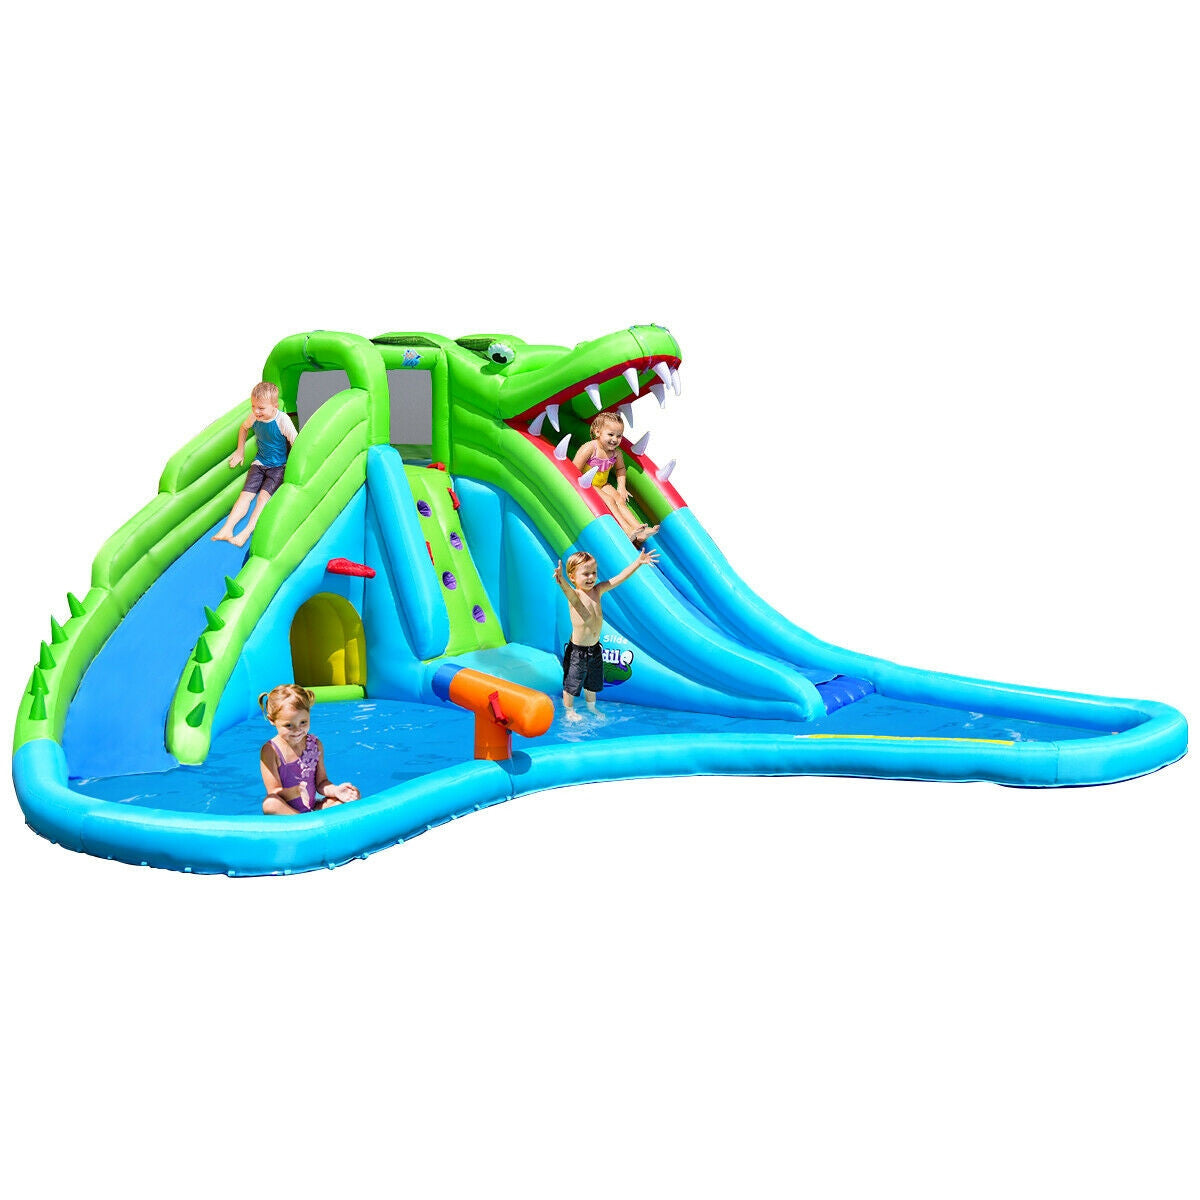 Summertime Staples™ Inflatable Slide with Pool for Kids Bounce House